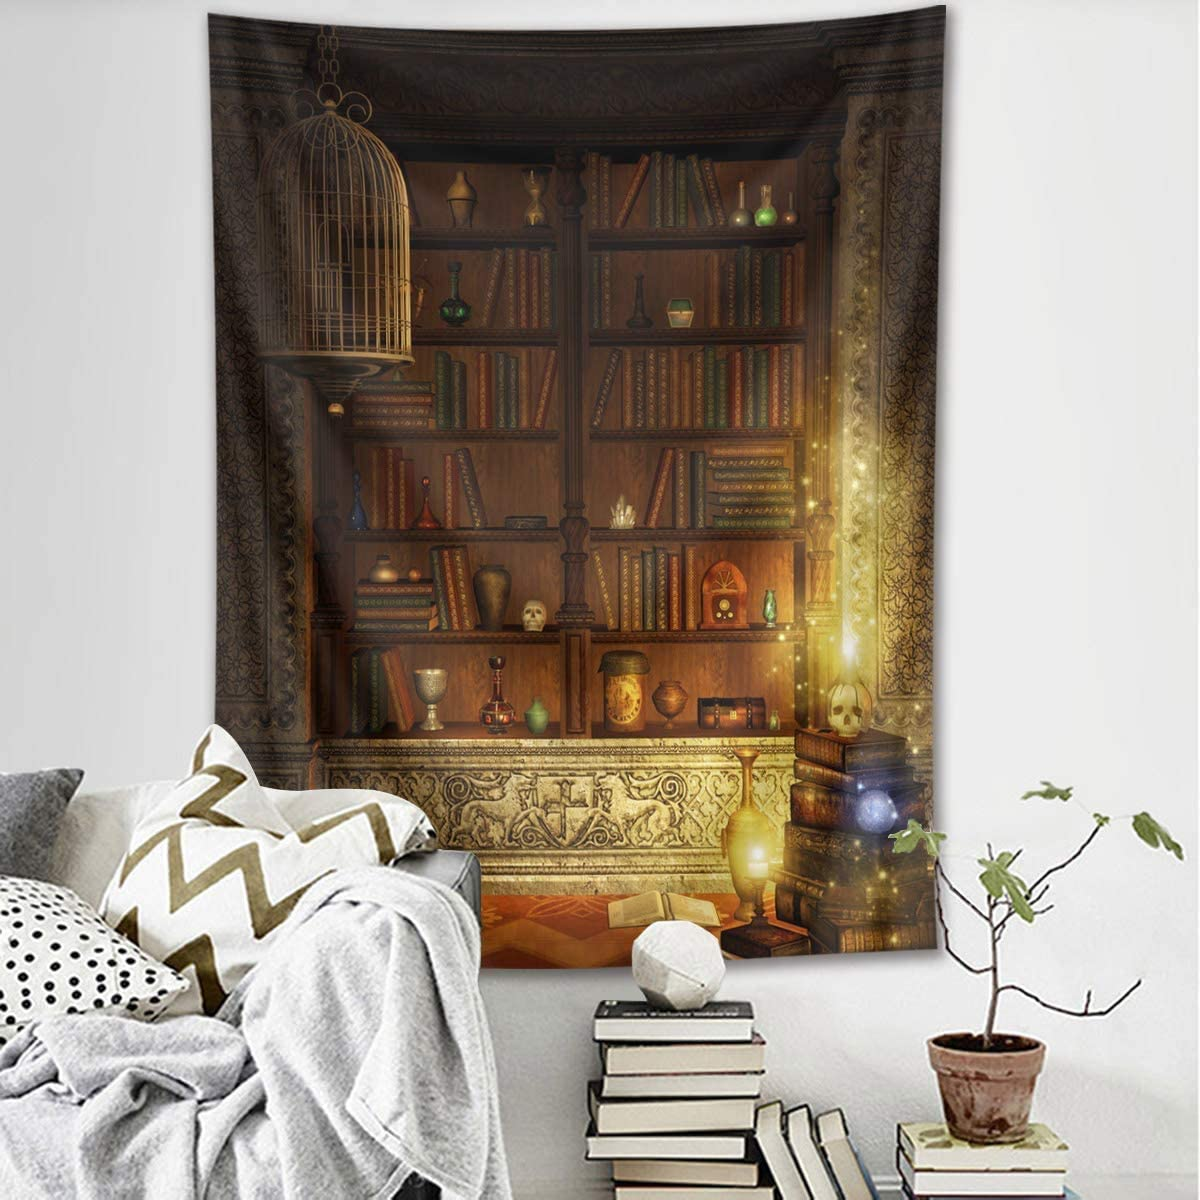 LB Halloween Gothic Libary Tapestry Books on Vintage Shelf with Skull Retro Bookshelf Tapestries Halloween Wall Hanging for Bedroom Living Room Home Decor 93 Lx71 W